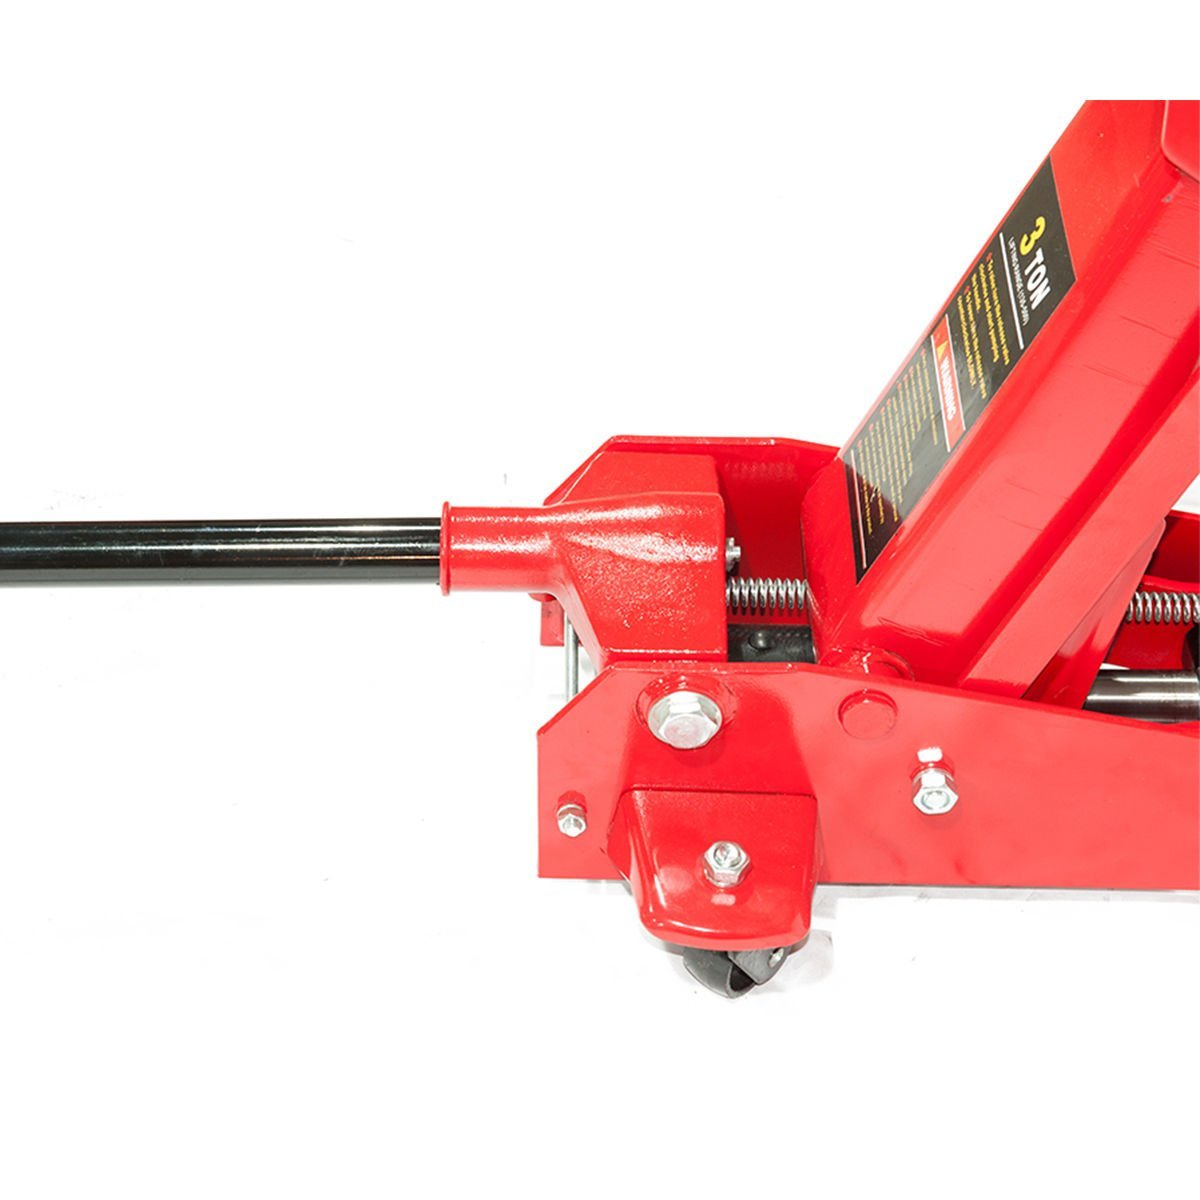 Kertou 12.5 x 2.6 cm Rubber Pad Trolley Jack Hydraulic Axle Stand